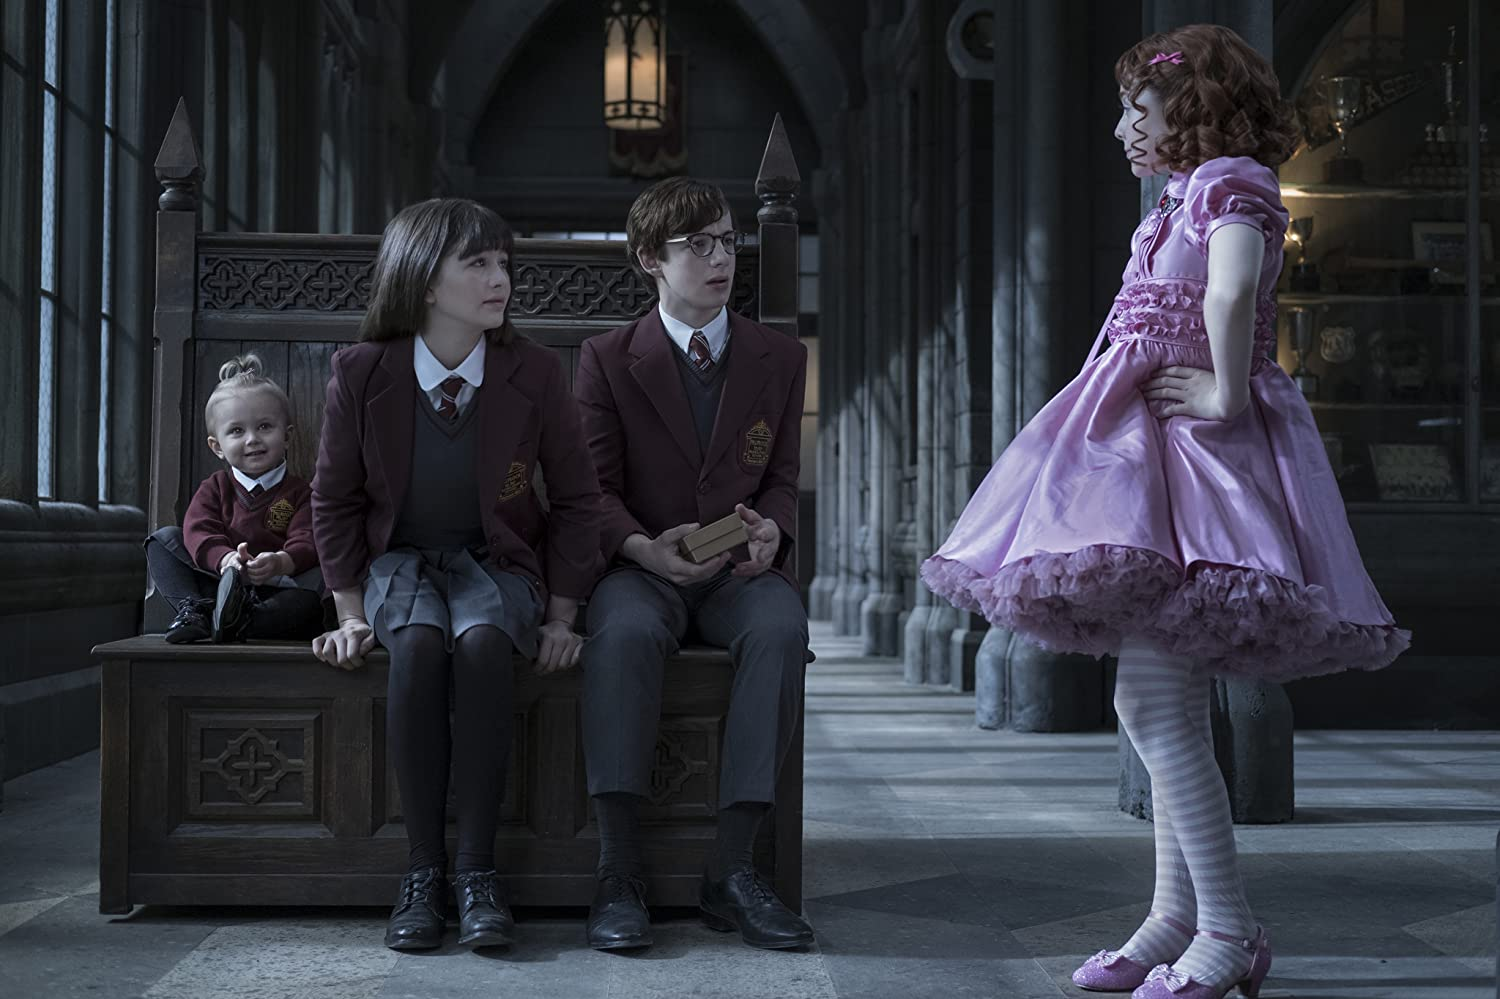 Malina Weissman, Kitana Turnbull, Louis Hynes, and Presley Smith in A Series of Unfortunate Events (2017)